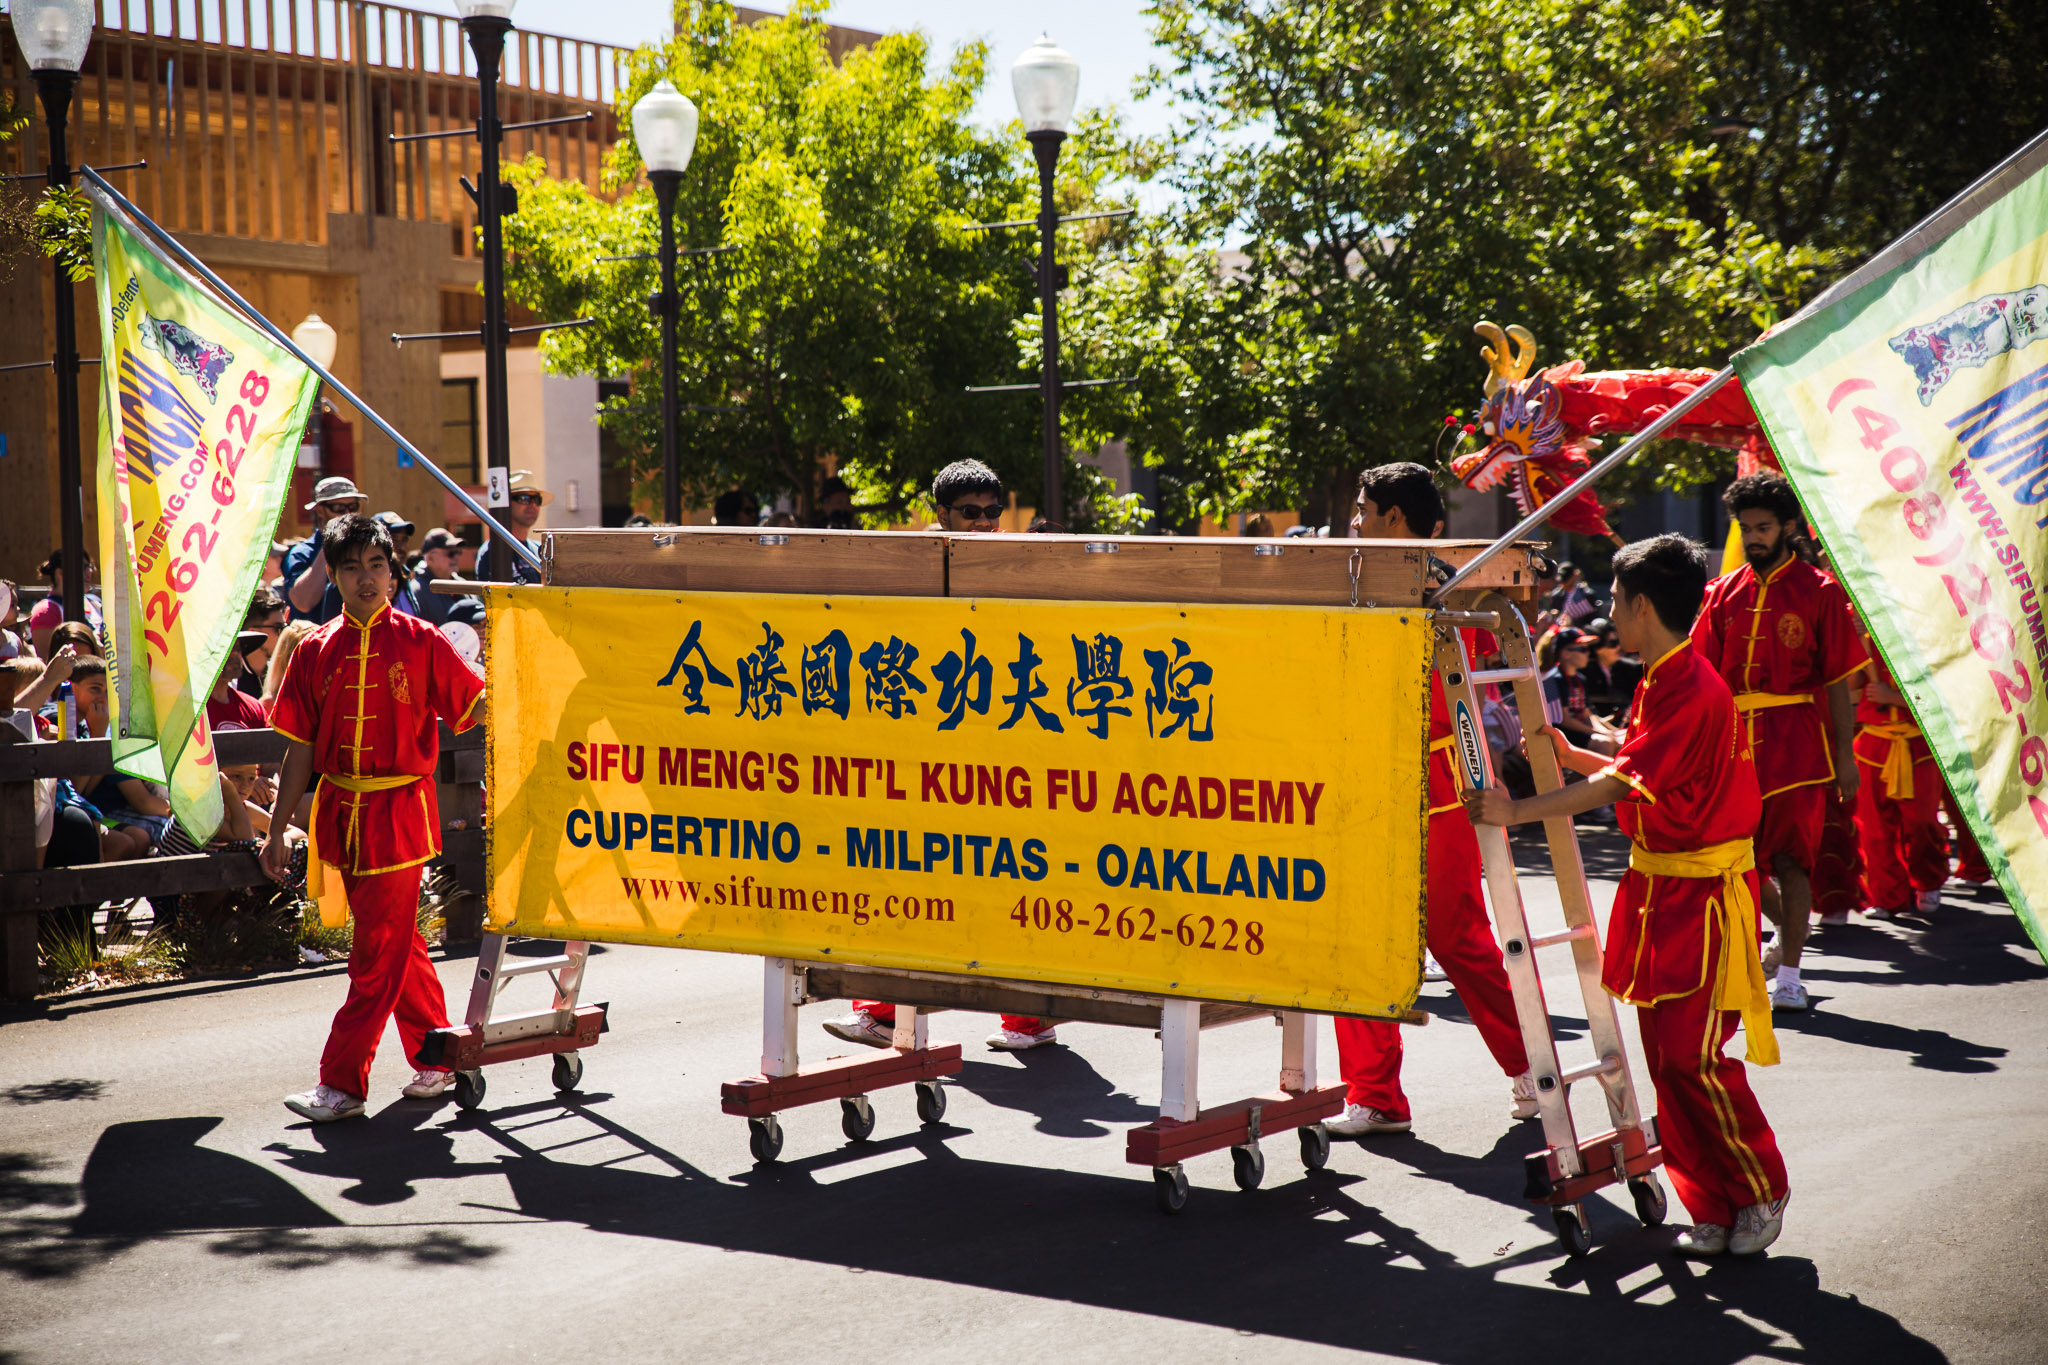 Archer_Inspired_Photography_Morgan_Hill_California_4th_of_july_parade-86.jpg